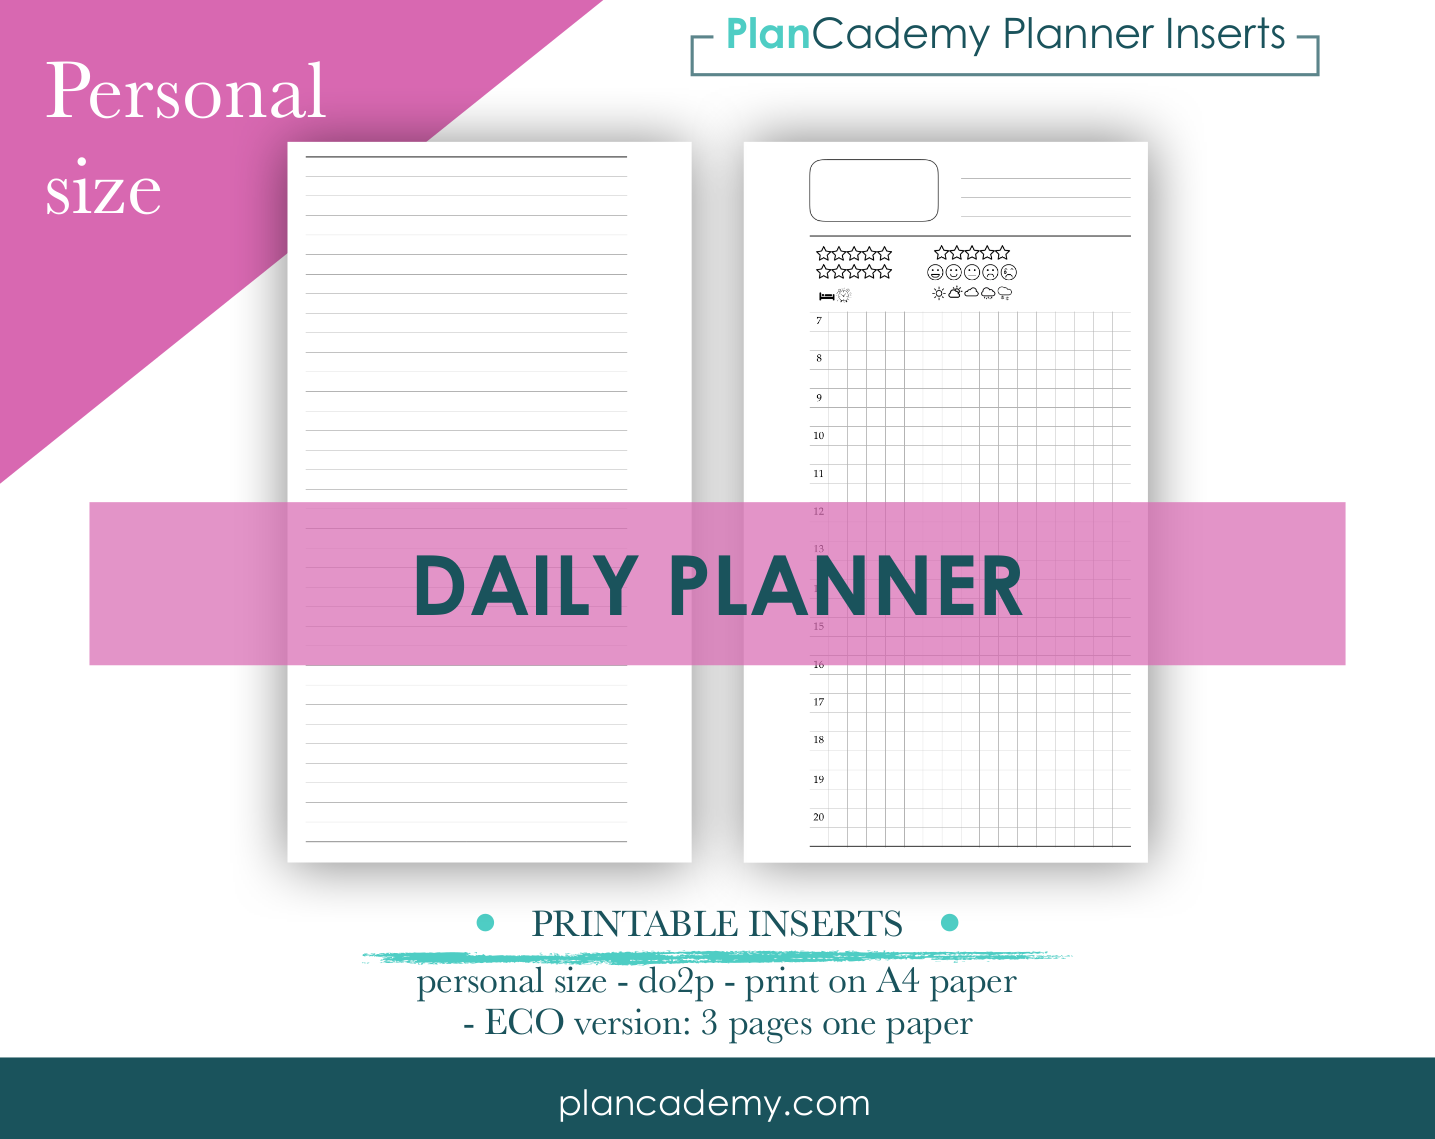 Daily planner - Personal size - do2p